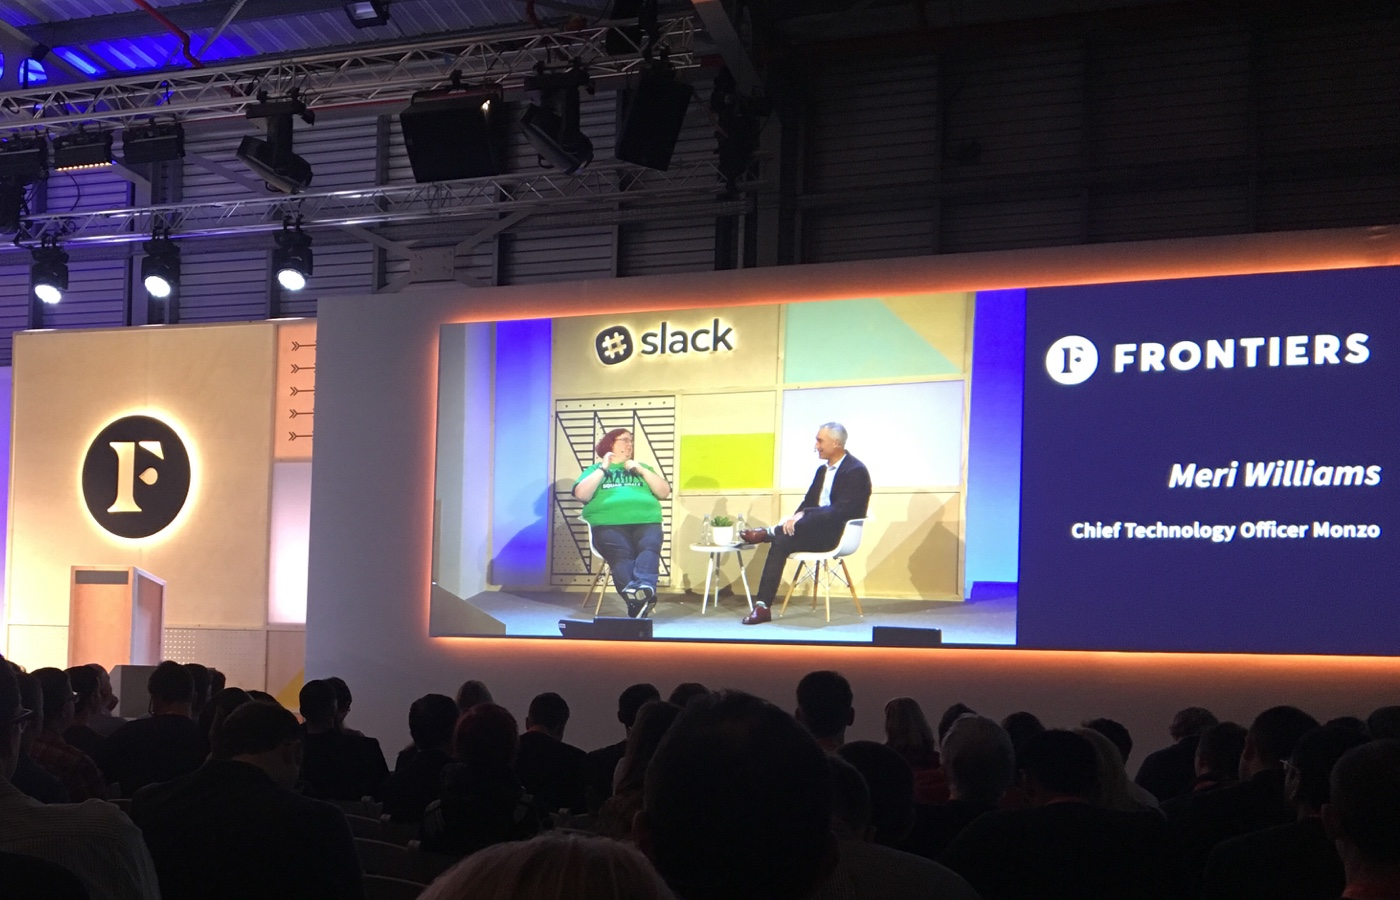 photo of the main stage at Slack Frontiers